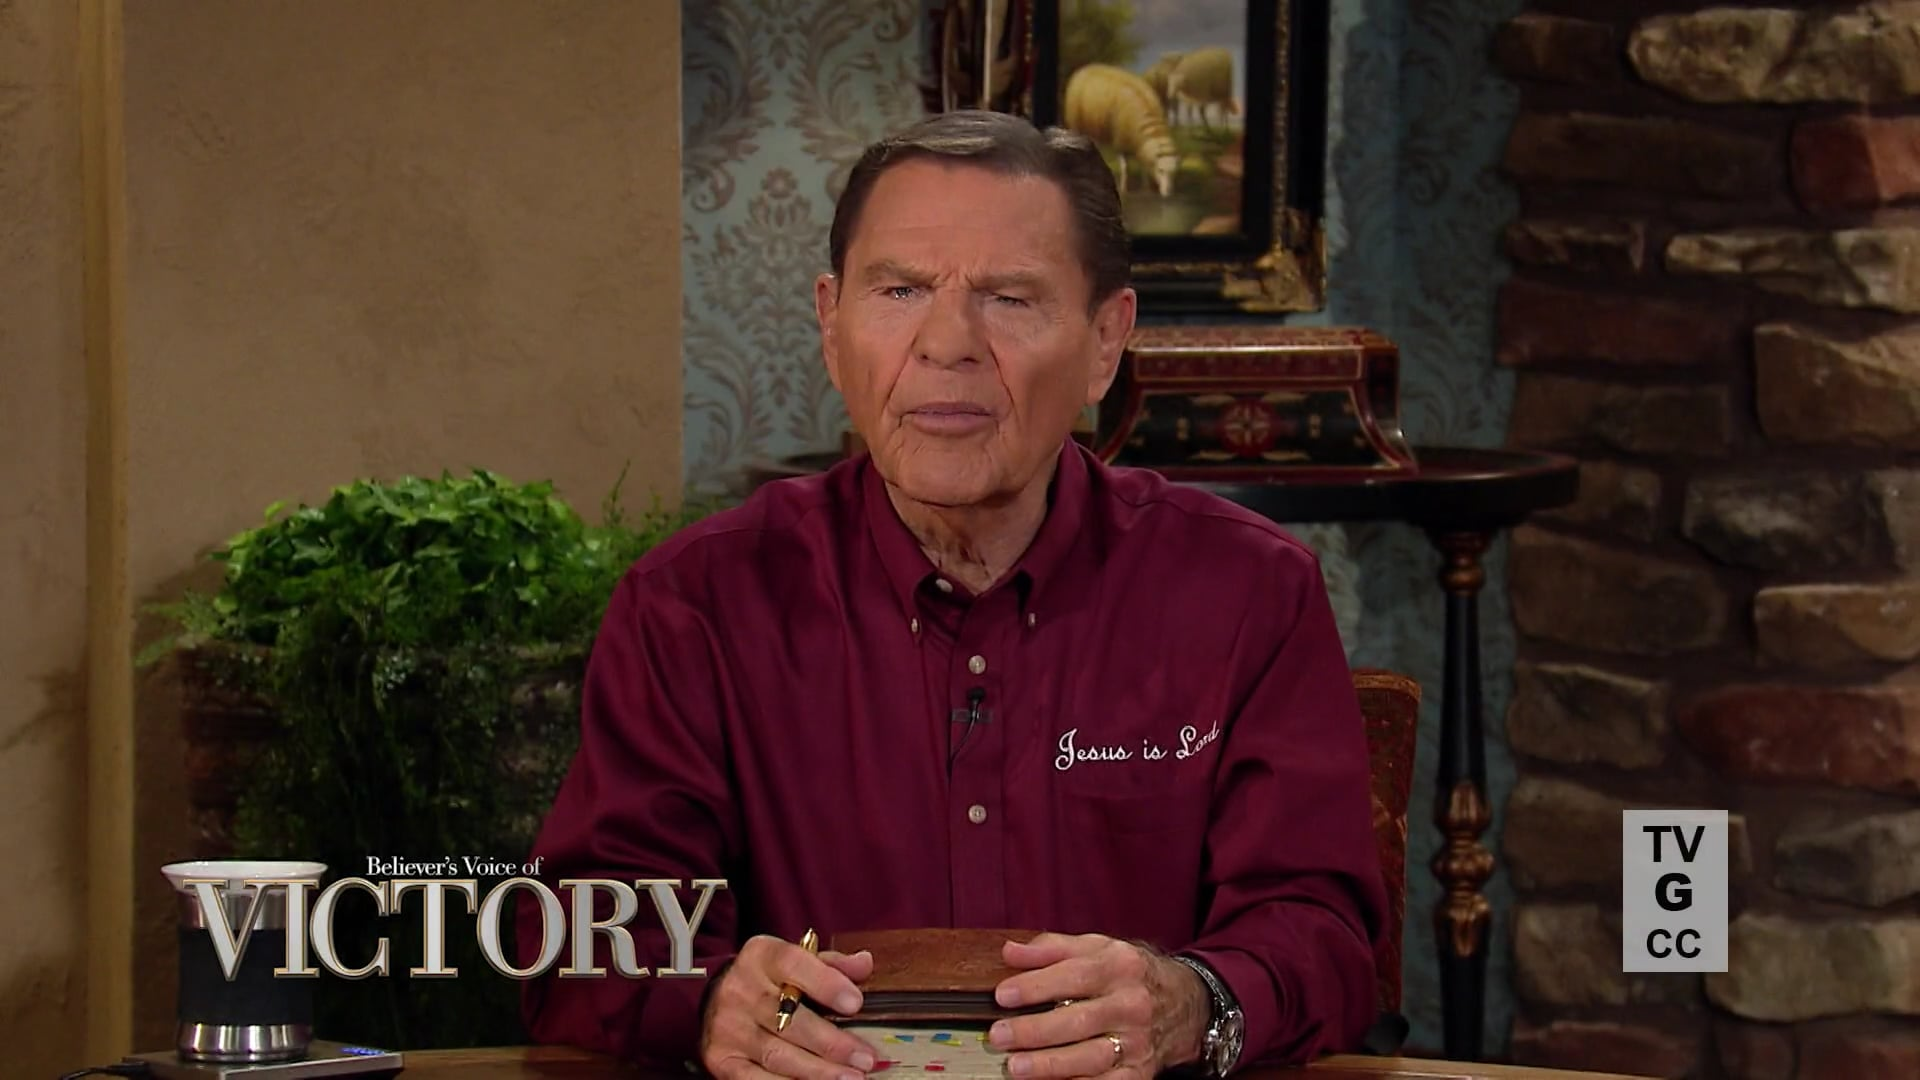 The devil is not good, but God is absolute good! Join Kenneth Copeland on Believer's Voice of Victory as he explains why Jesus was Anointed to do good to all because the goodness of God was in Him. Learn why the goodness of God is walking in love and how your love for others is an expression of His goodness to the world!